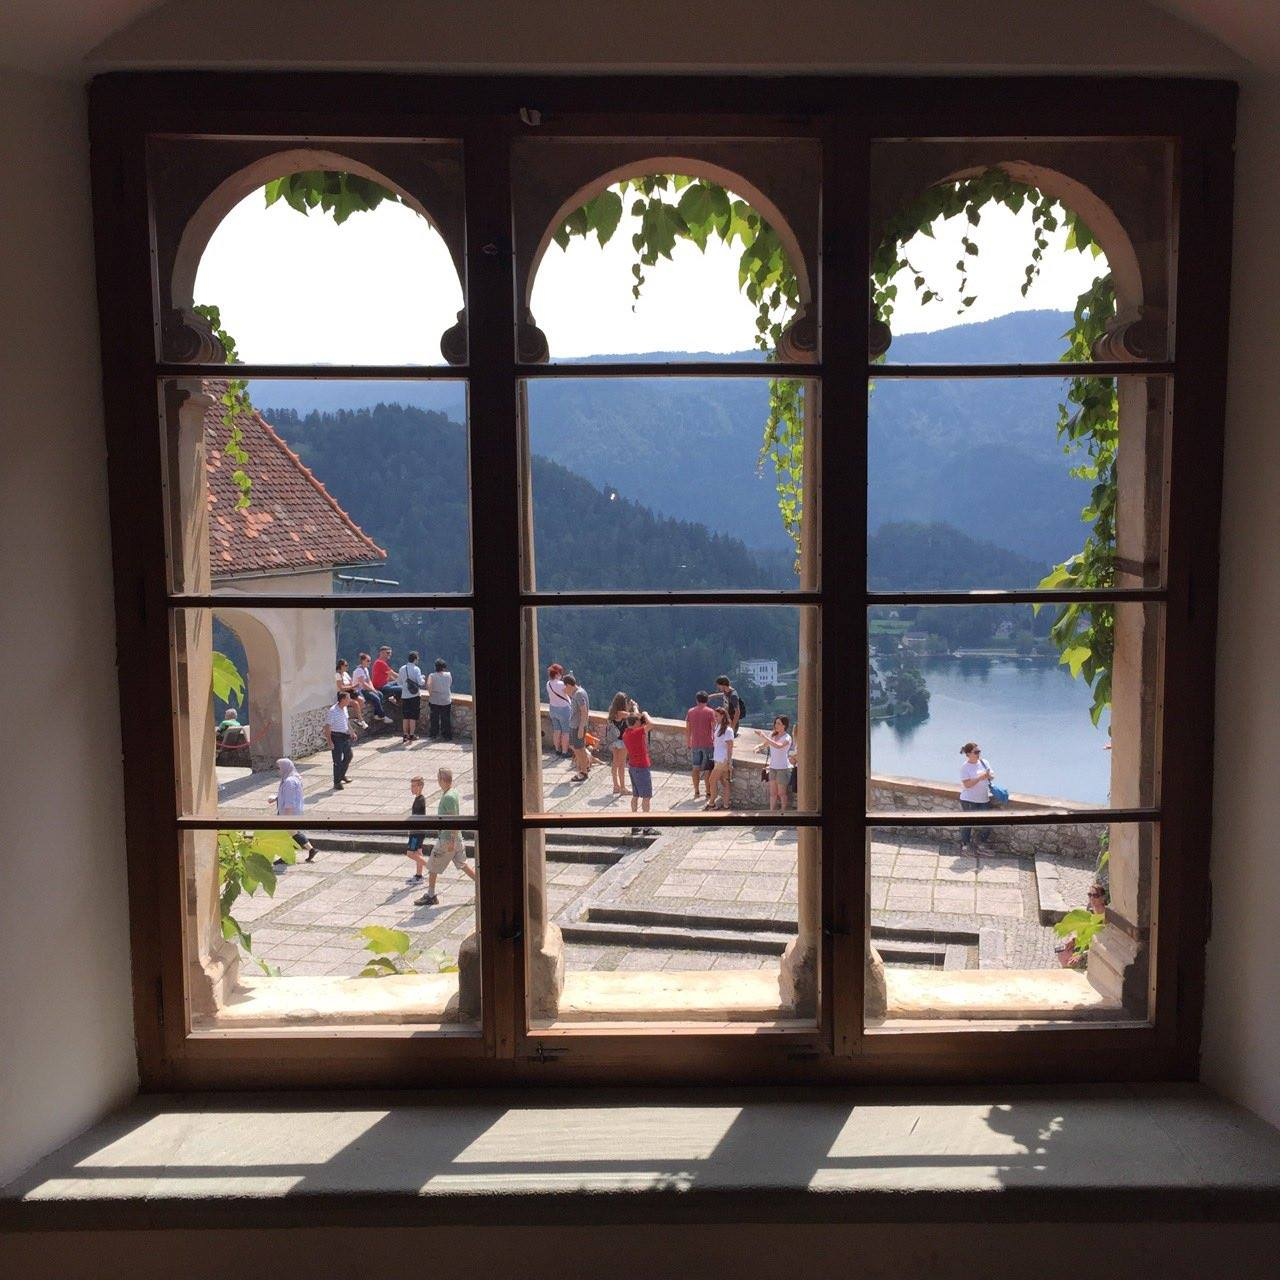 View from inside of the Bled Castle 1